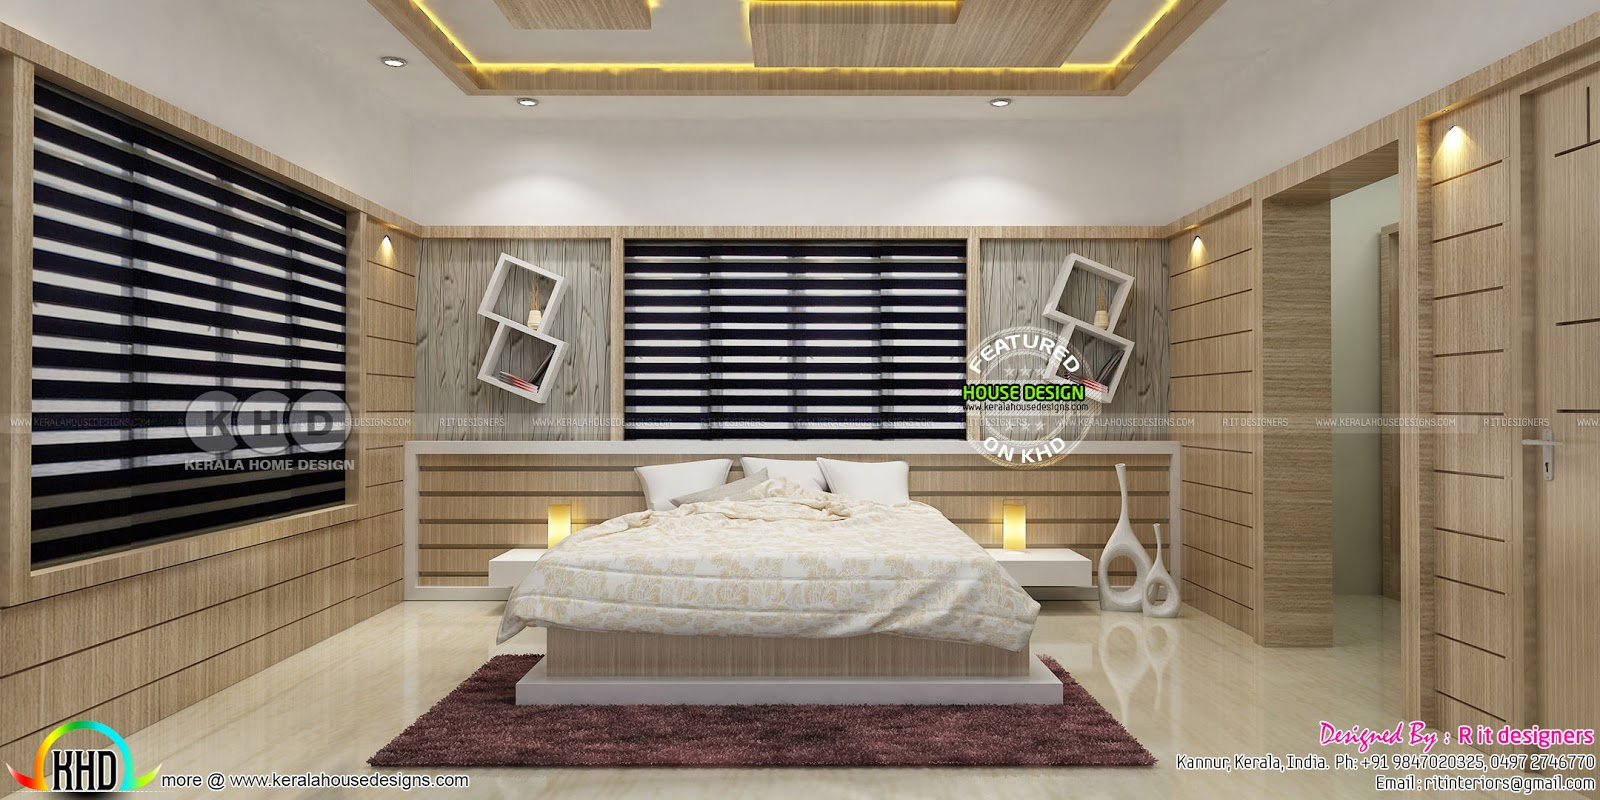 Beautiful modern bedroom interior designs Kerala home design and floor plans